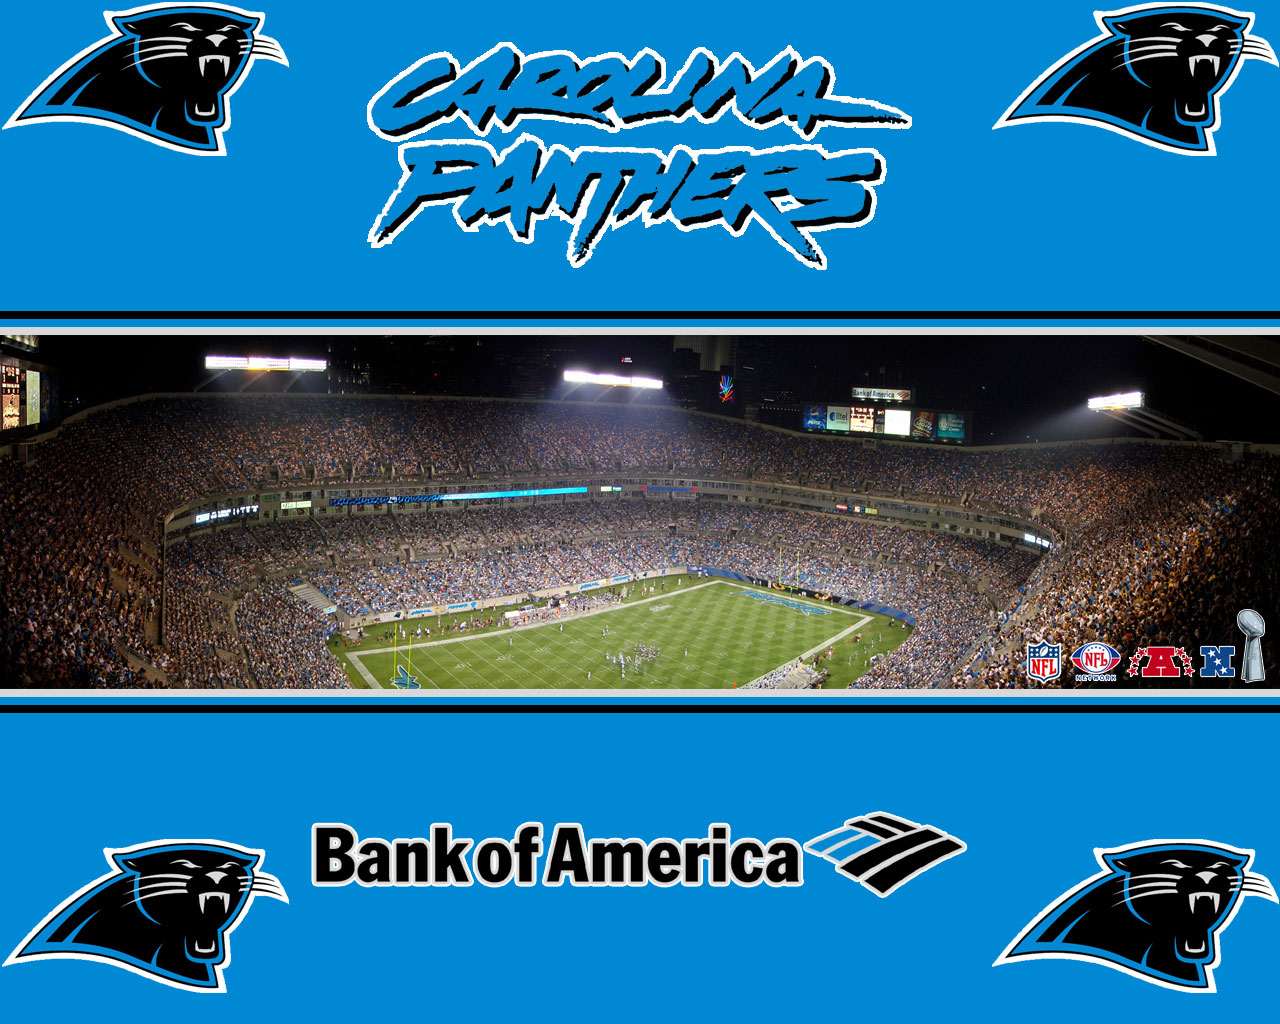 http://3.bp.blogspot.com/_SPY5-z18DBU/TTR7_bKfIPI/AAAAAAAAARU/HeKPrkPLcws/s1600/carolina_panthers_wallpaper_stadium_bank_of_america_1280x1024.jpeg